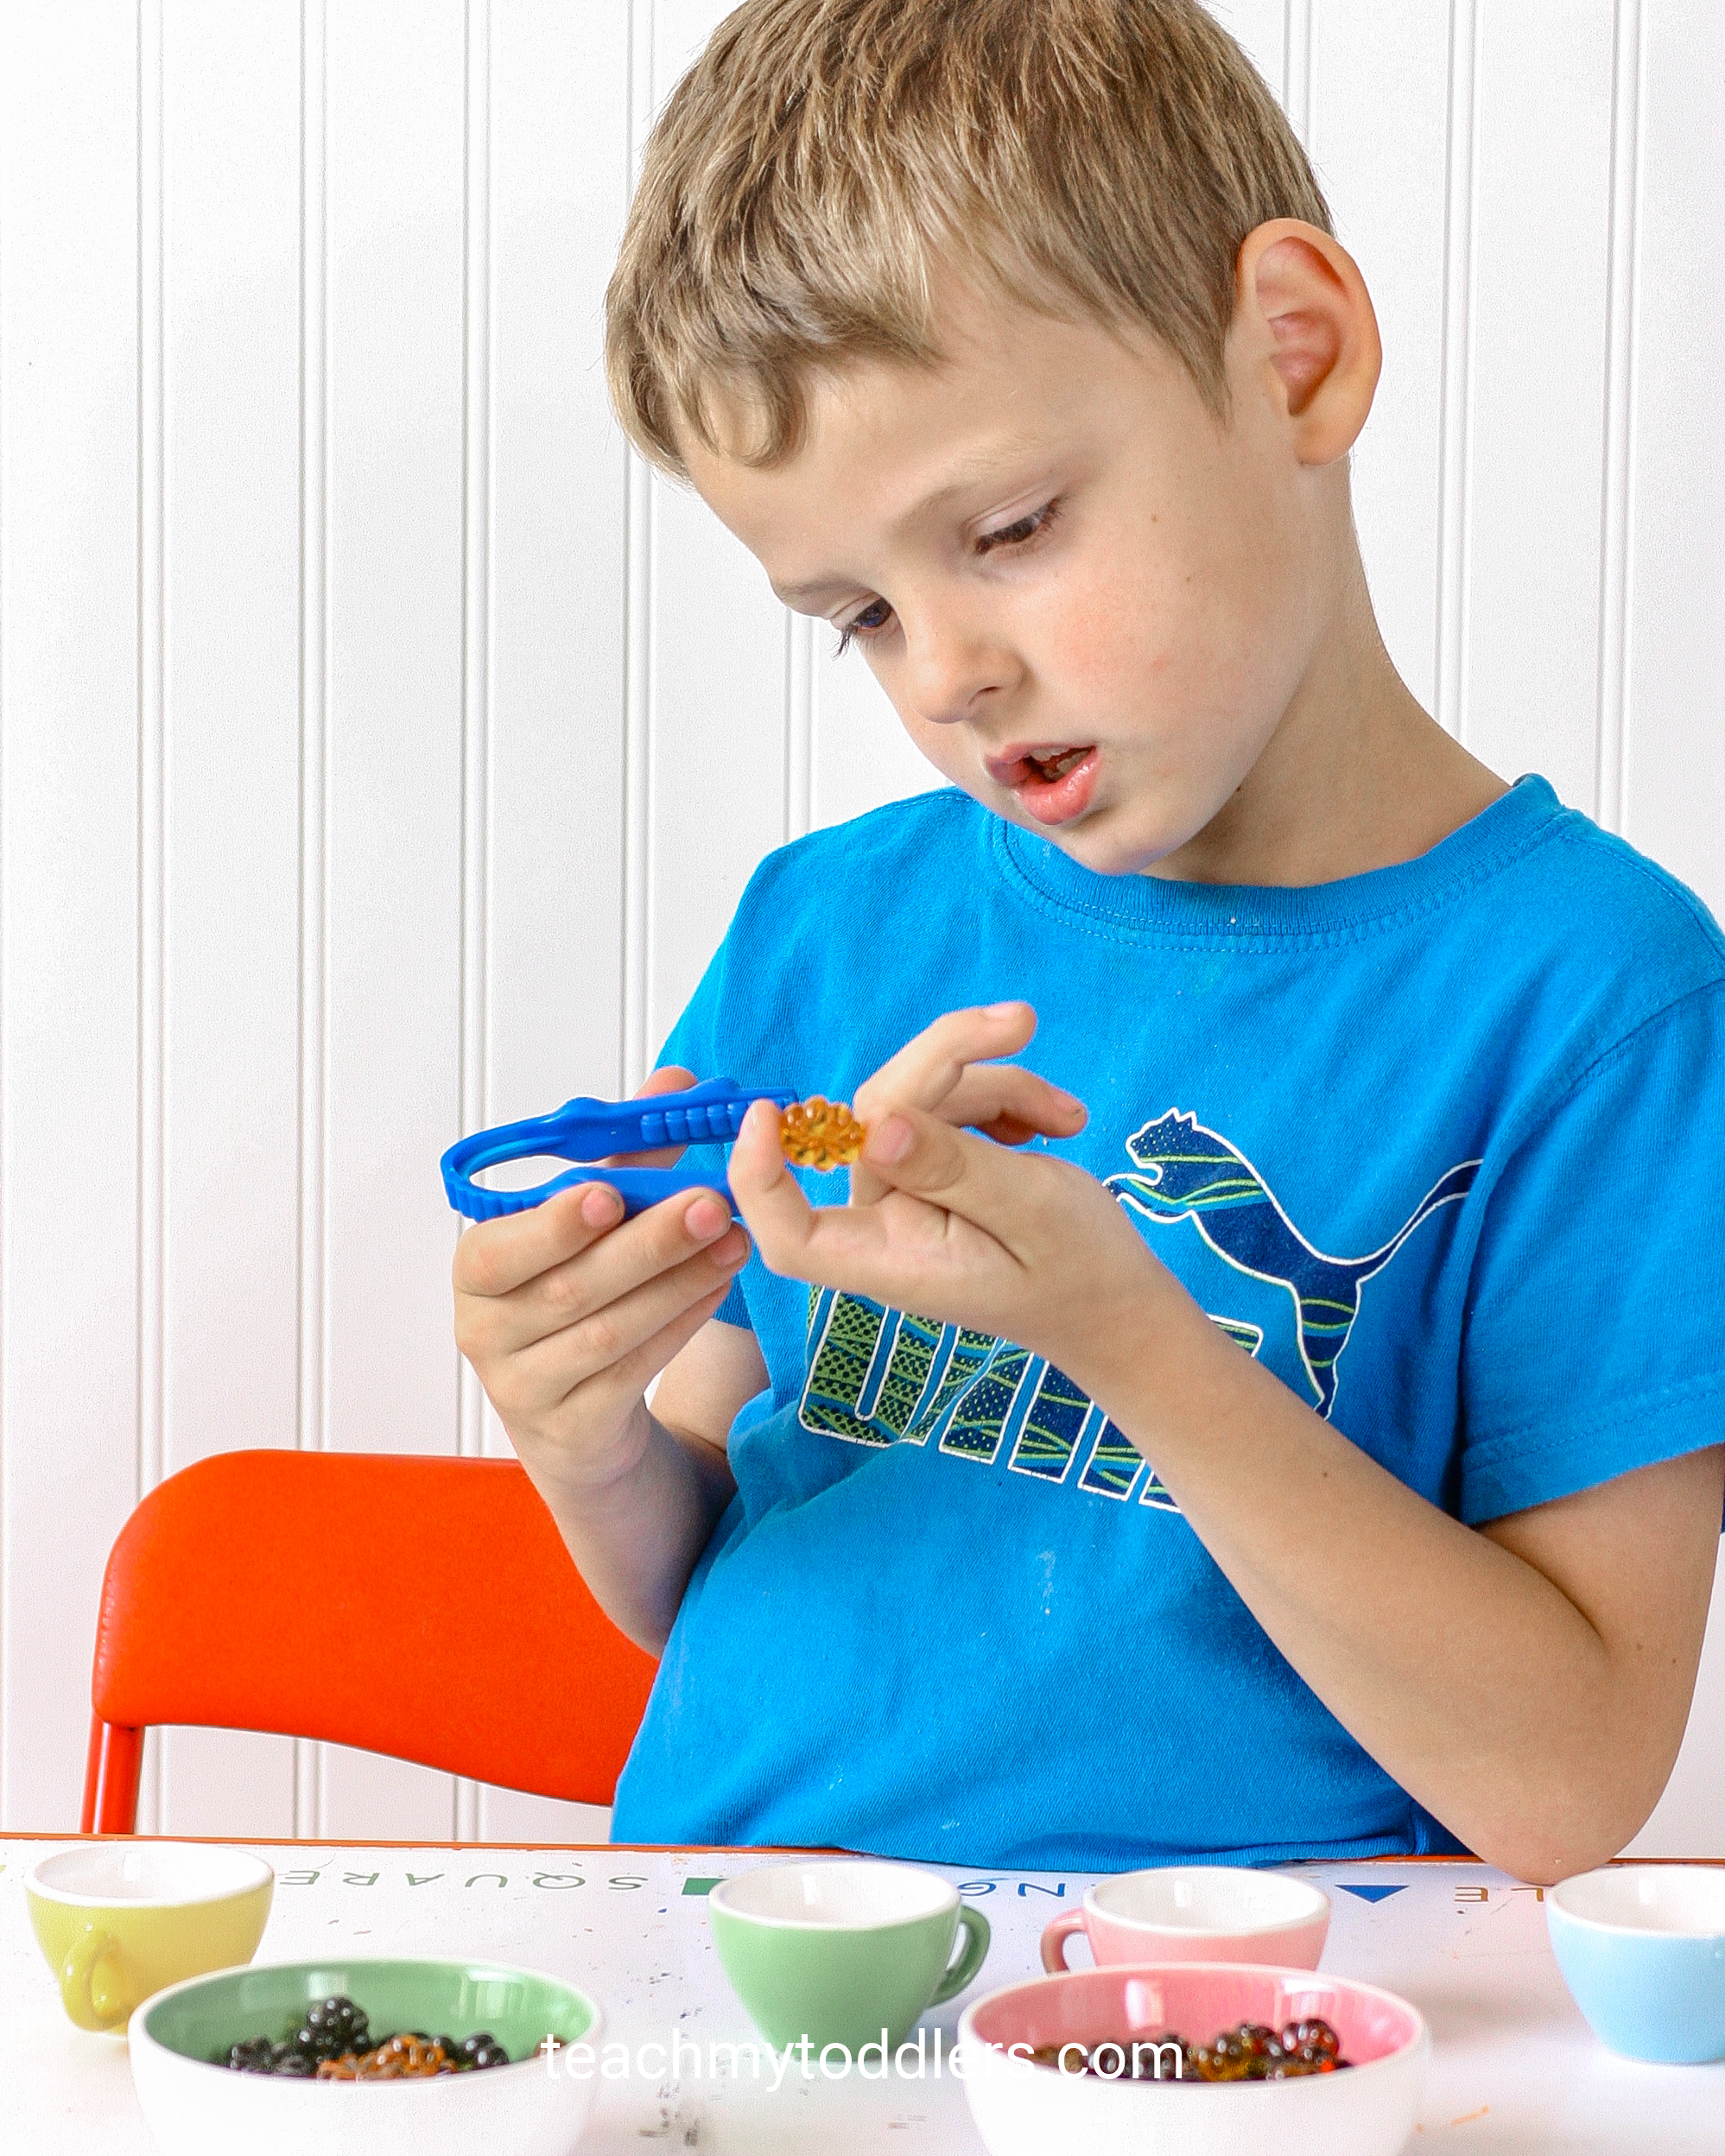 Find out how to use these great table scatter activities to teach your toddlers math